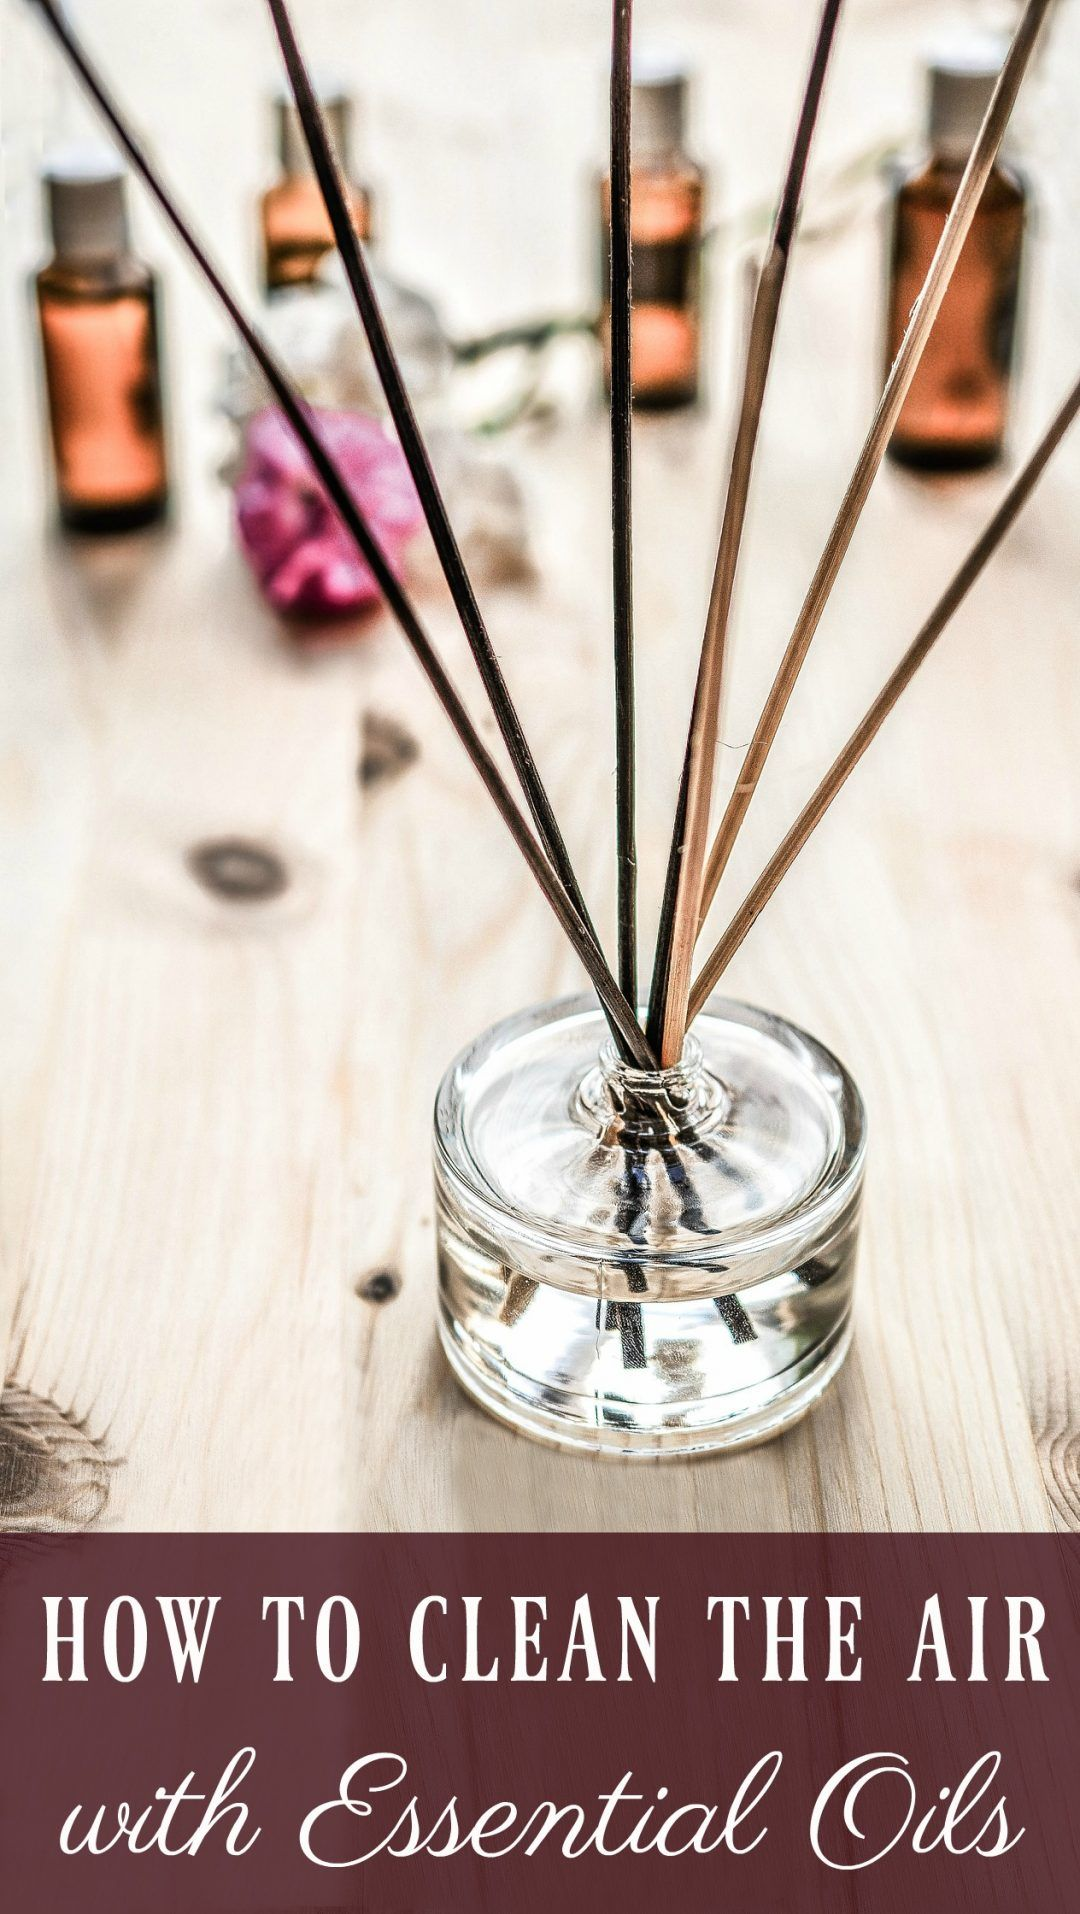 How to Clean the Air with Essential Oils Air freshener